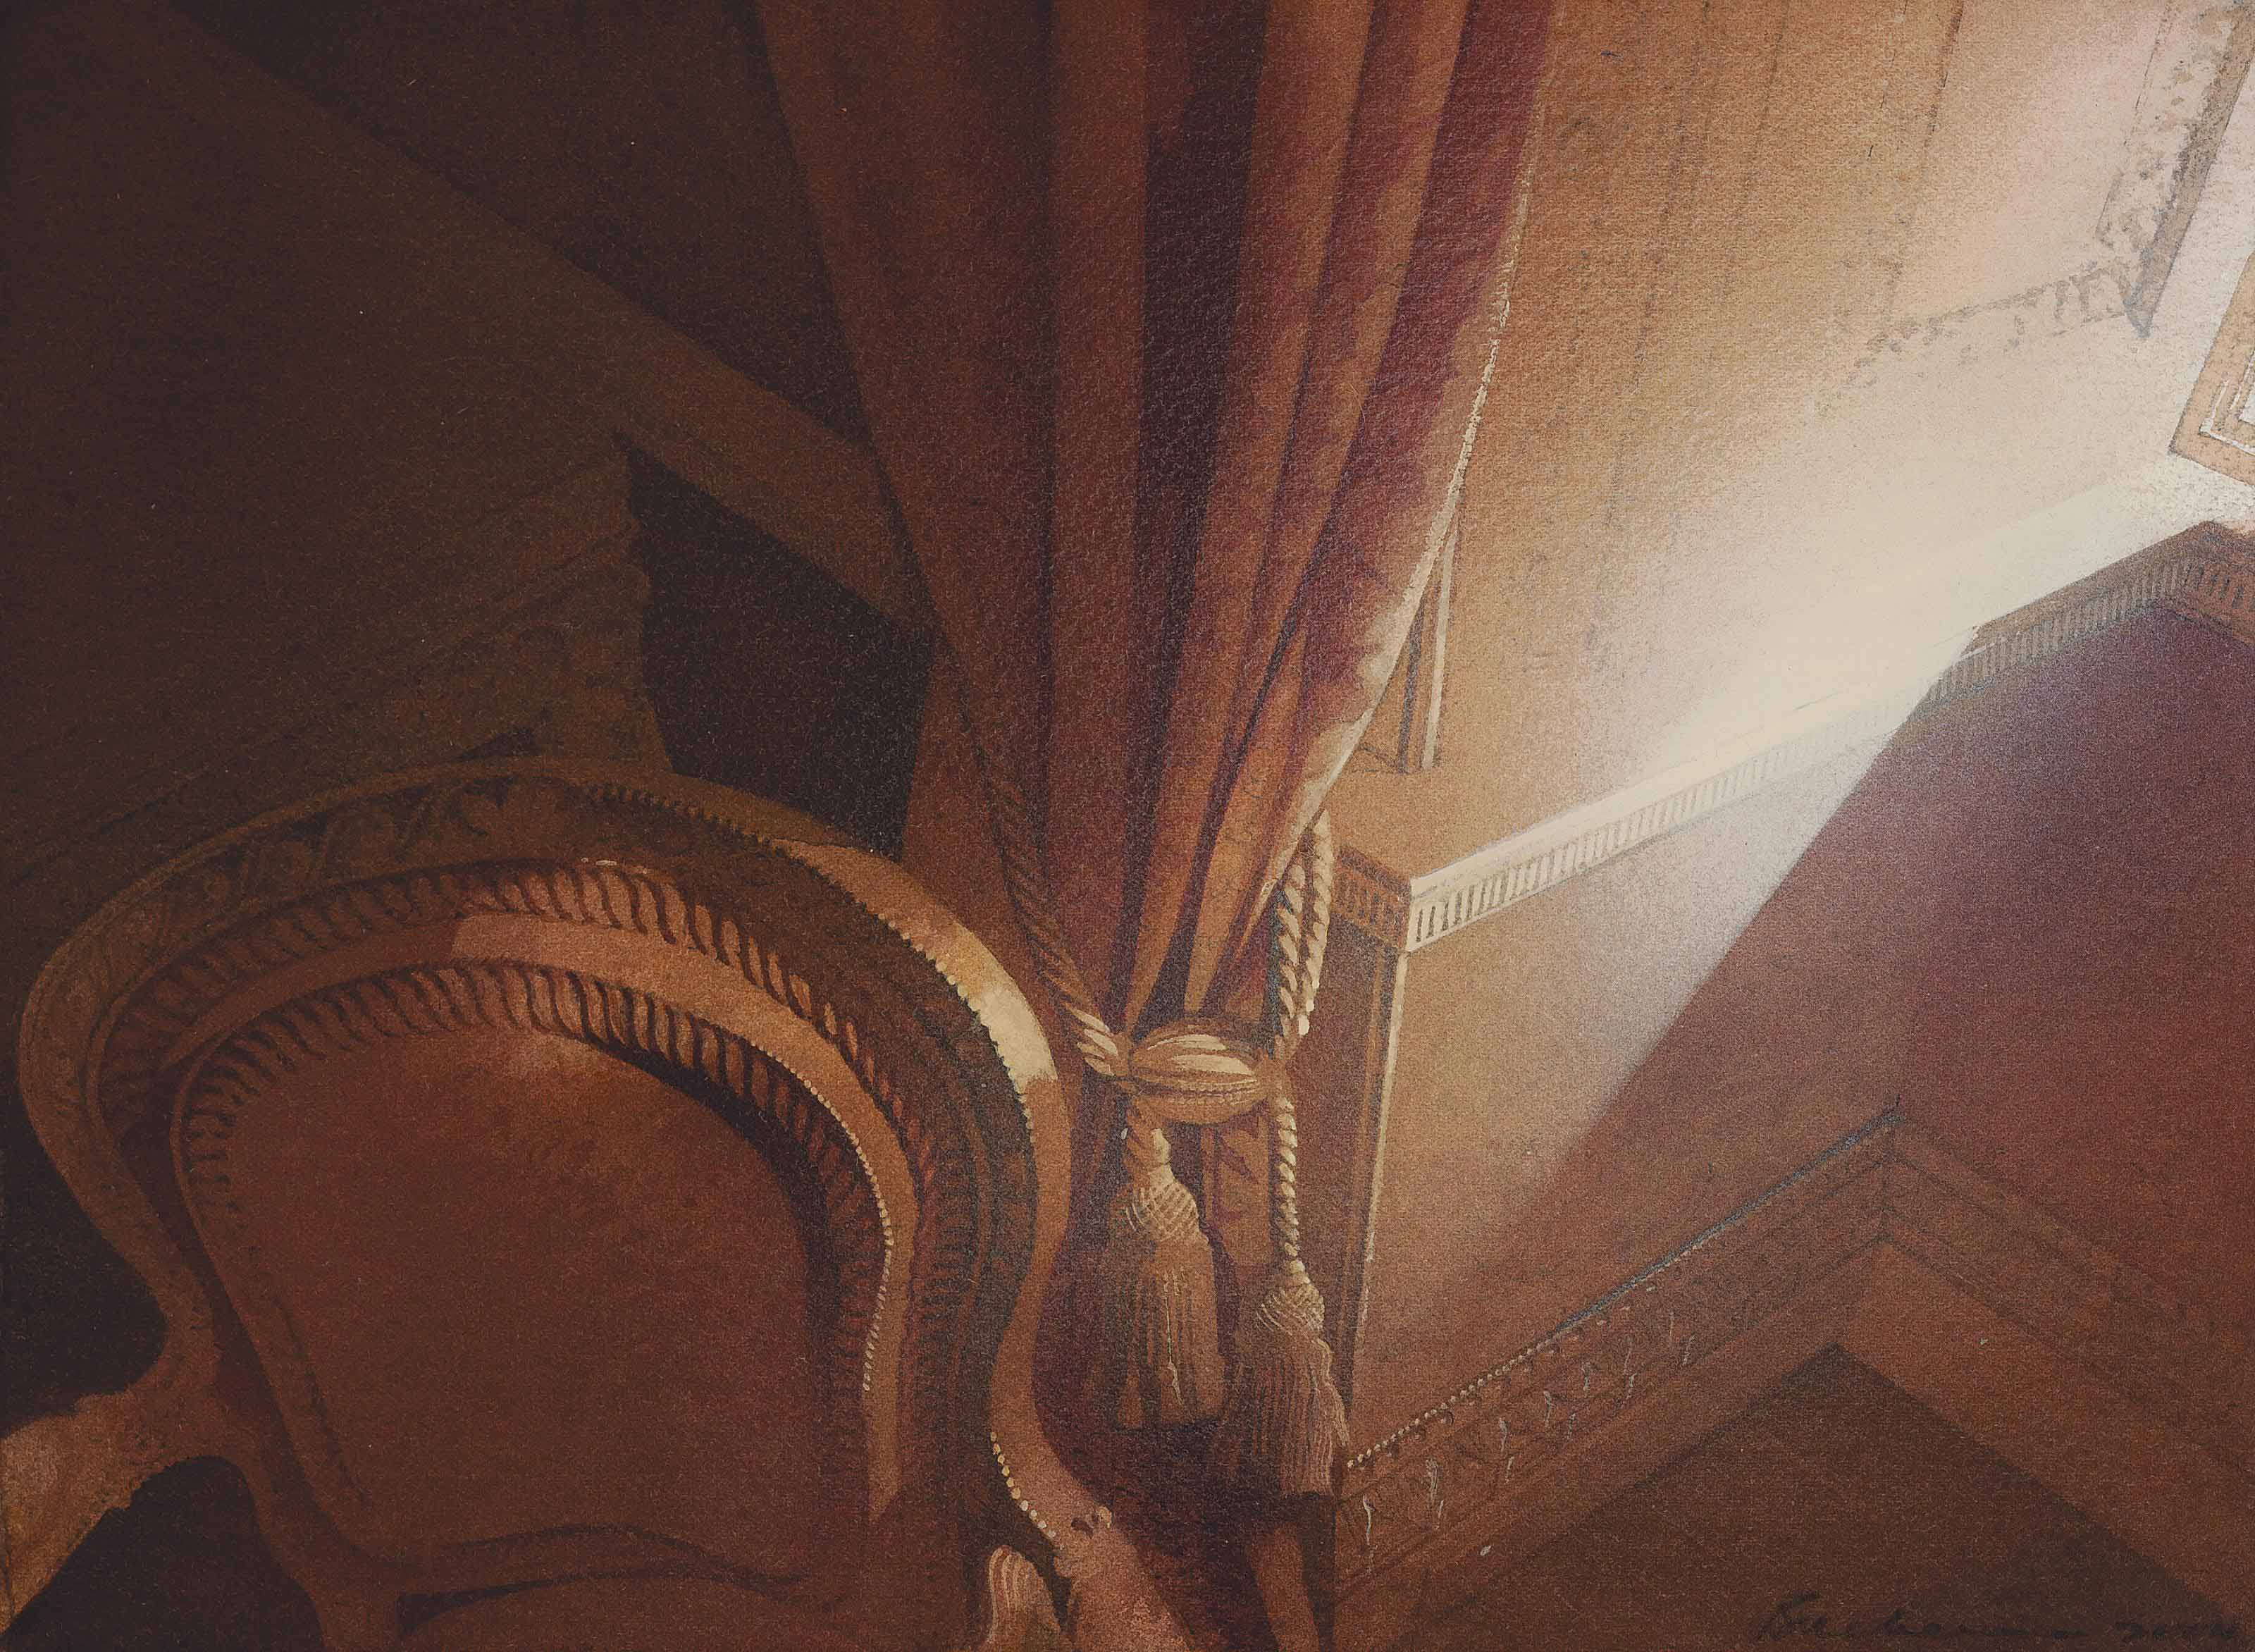 Dusty sunlight at Syon House